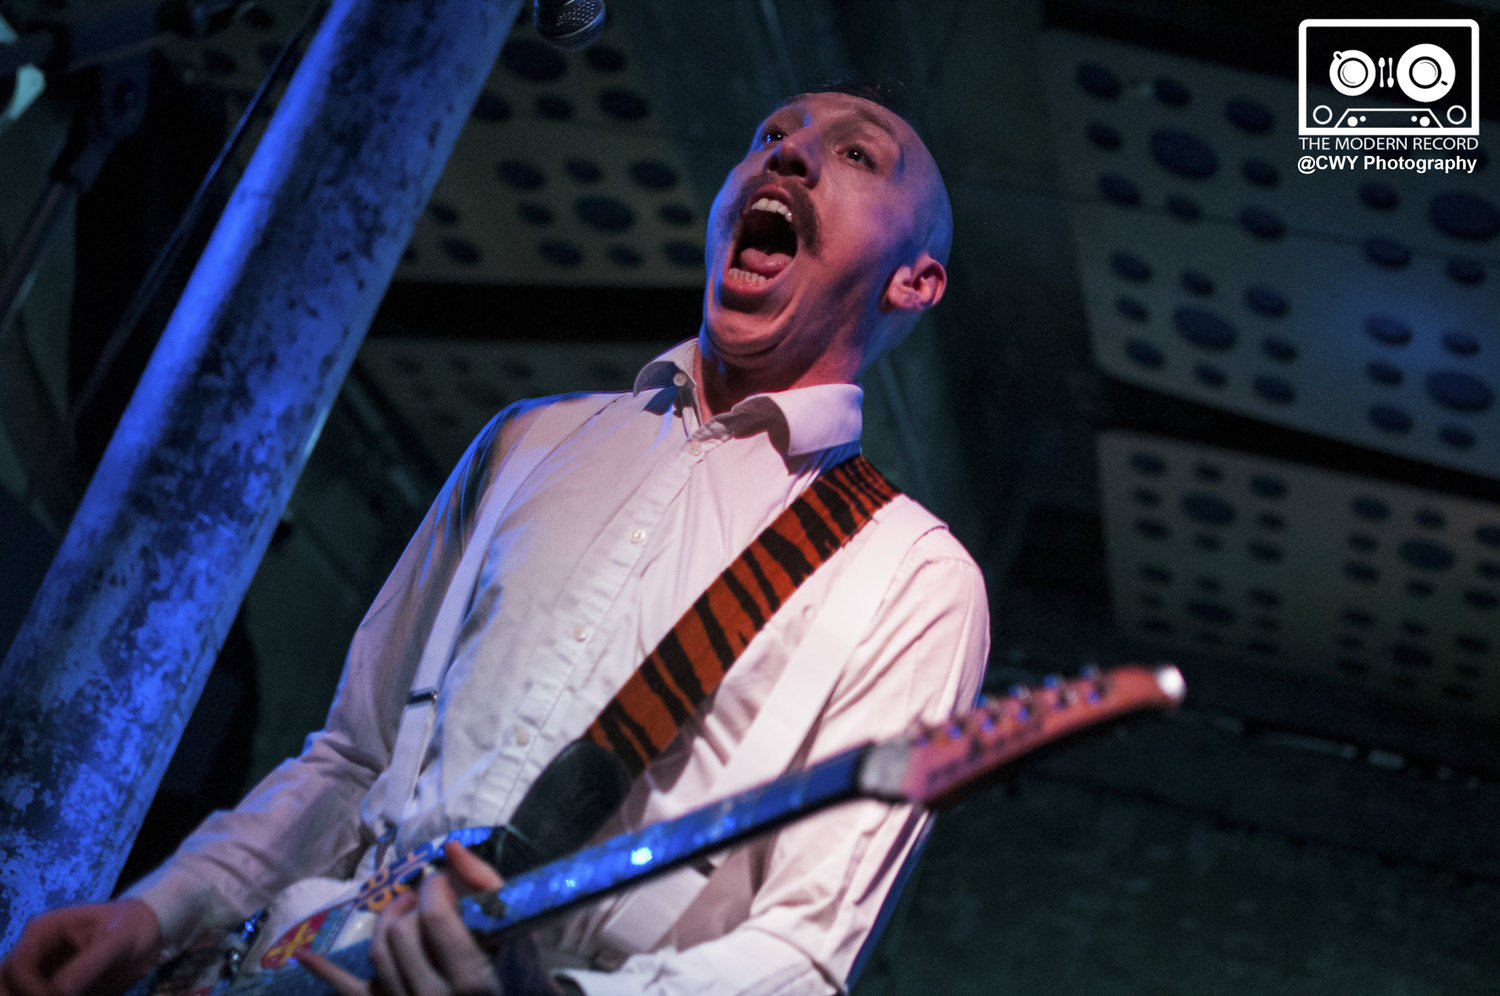 JAMIE LENMAN PERFORMING AT GLASGOW'S STEREO CAFE BAR - 02.02.2018  PICTURE BY: CWY PHOTOGRAPHY